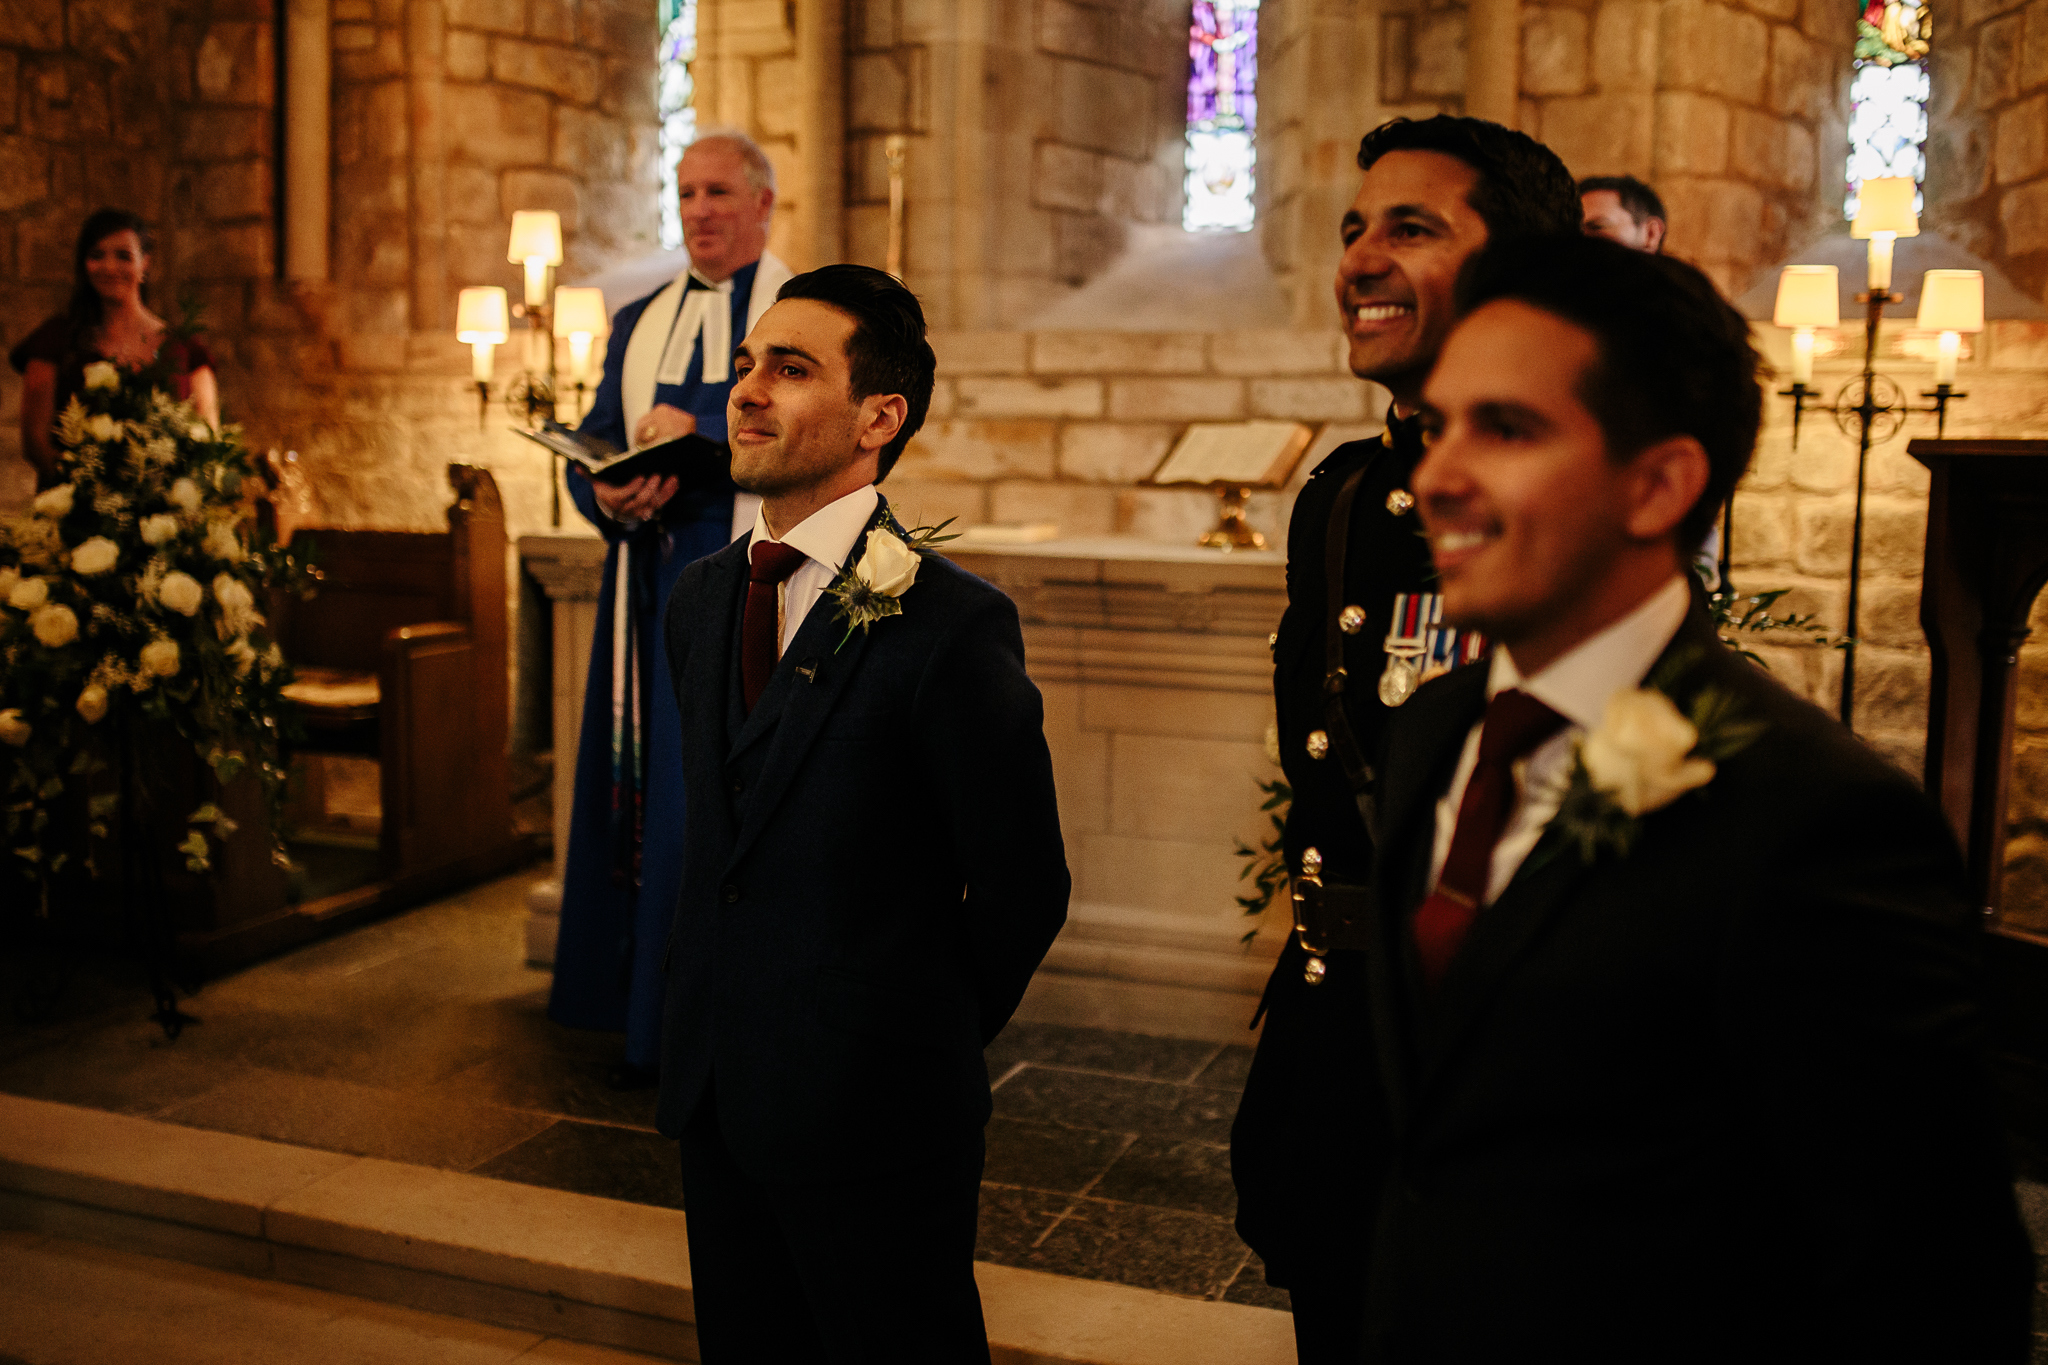 FIrst look - Expression - Groom - Church - Ceremony - Fine Art Photo - Moments over Mountains - Scottish Wedding - Scotland Wedding - Scotland Groom in church